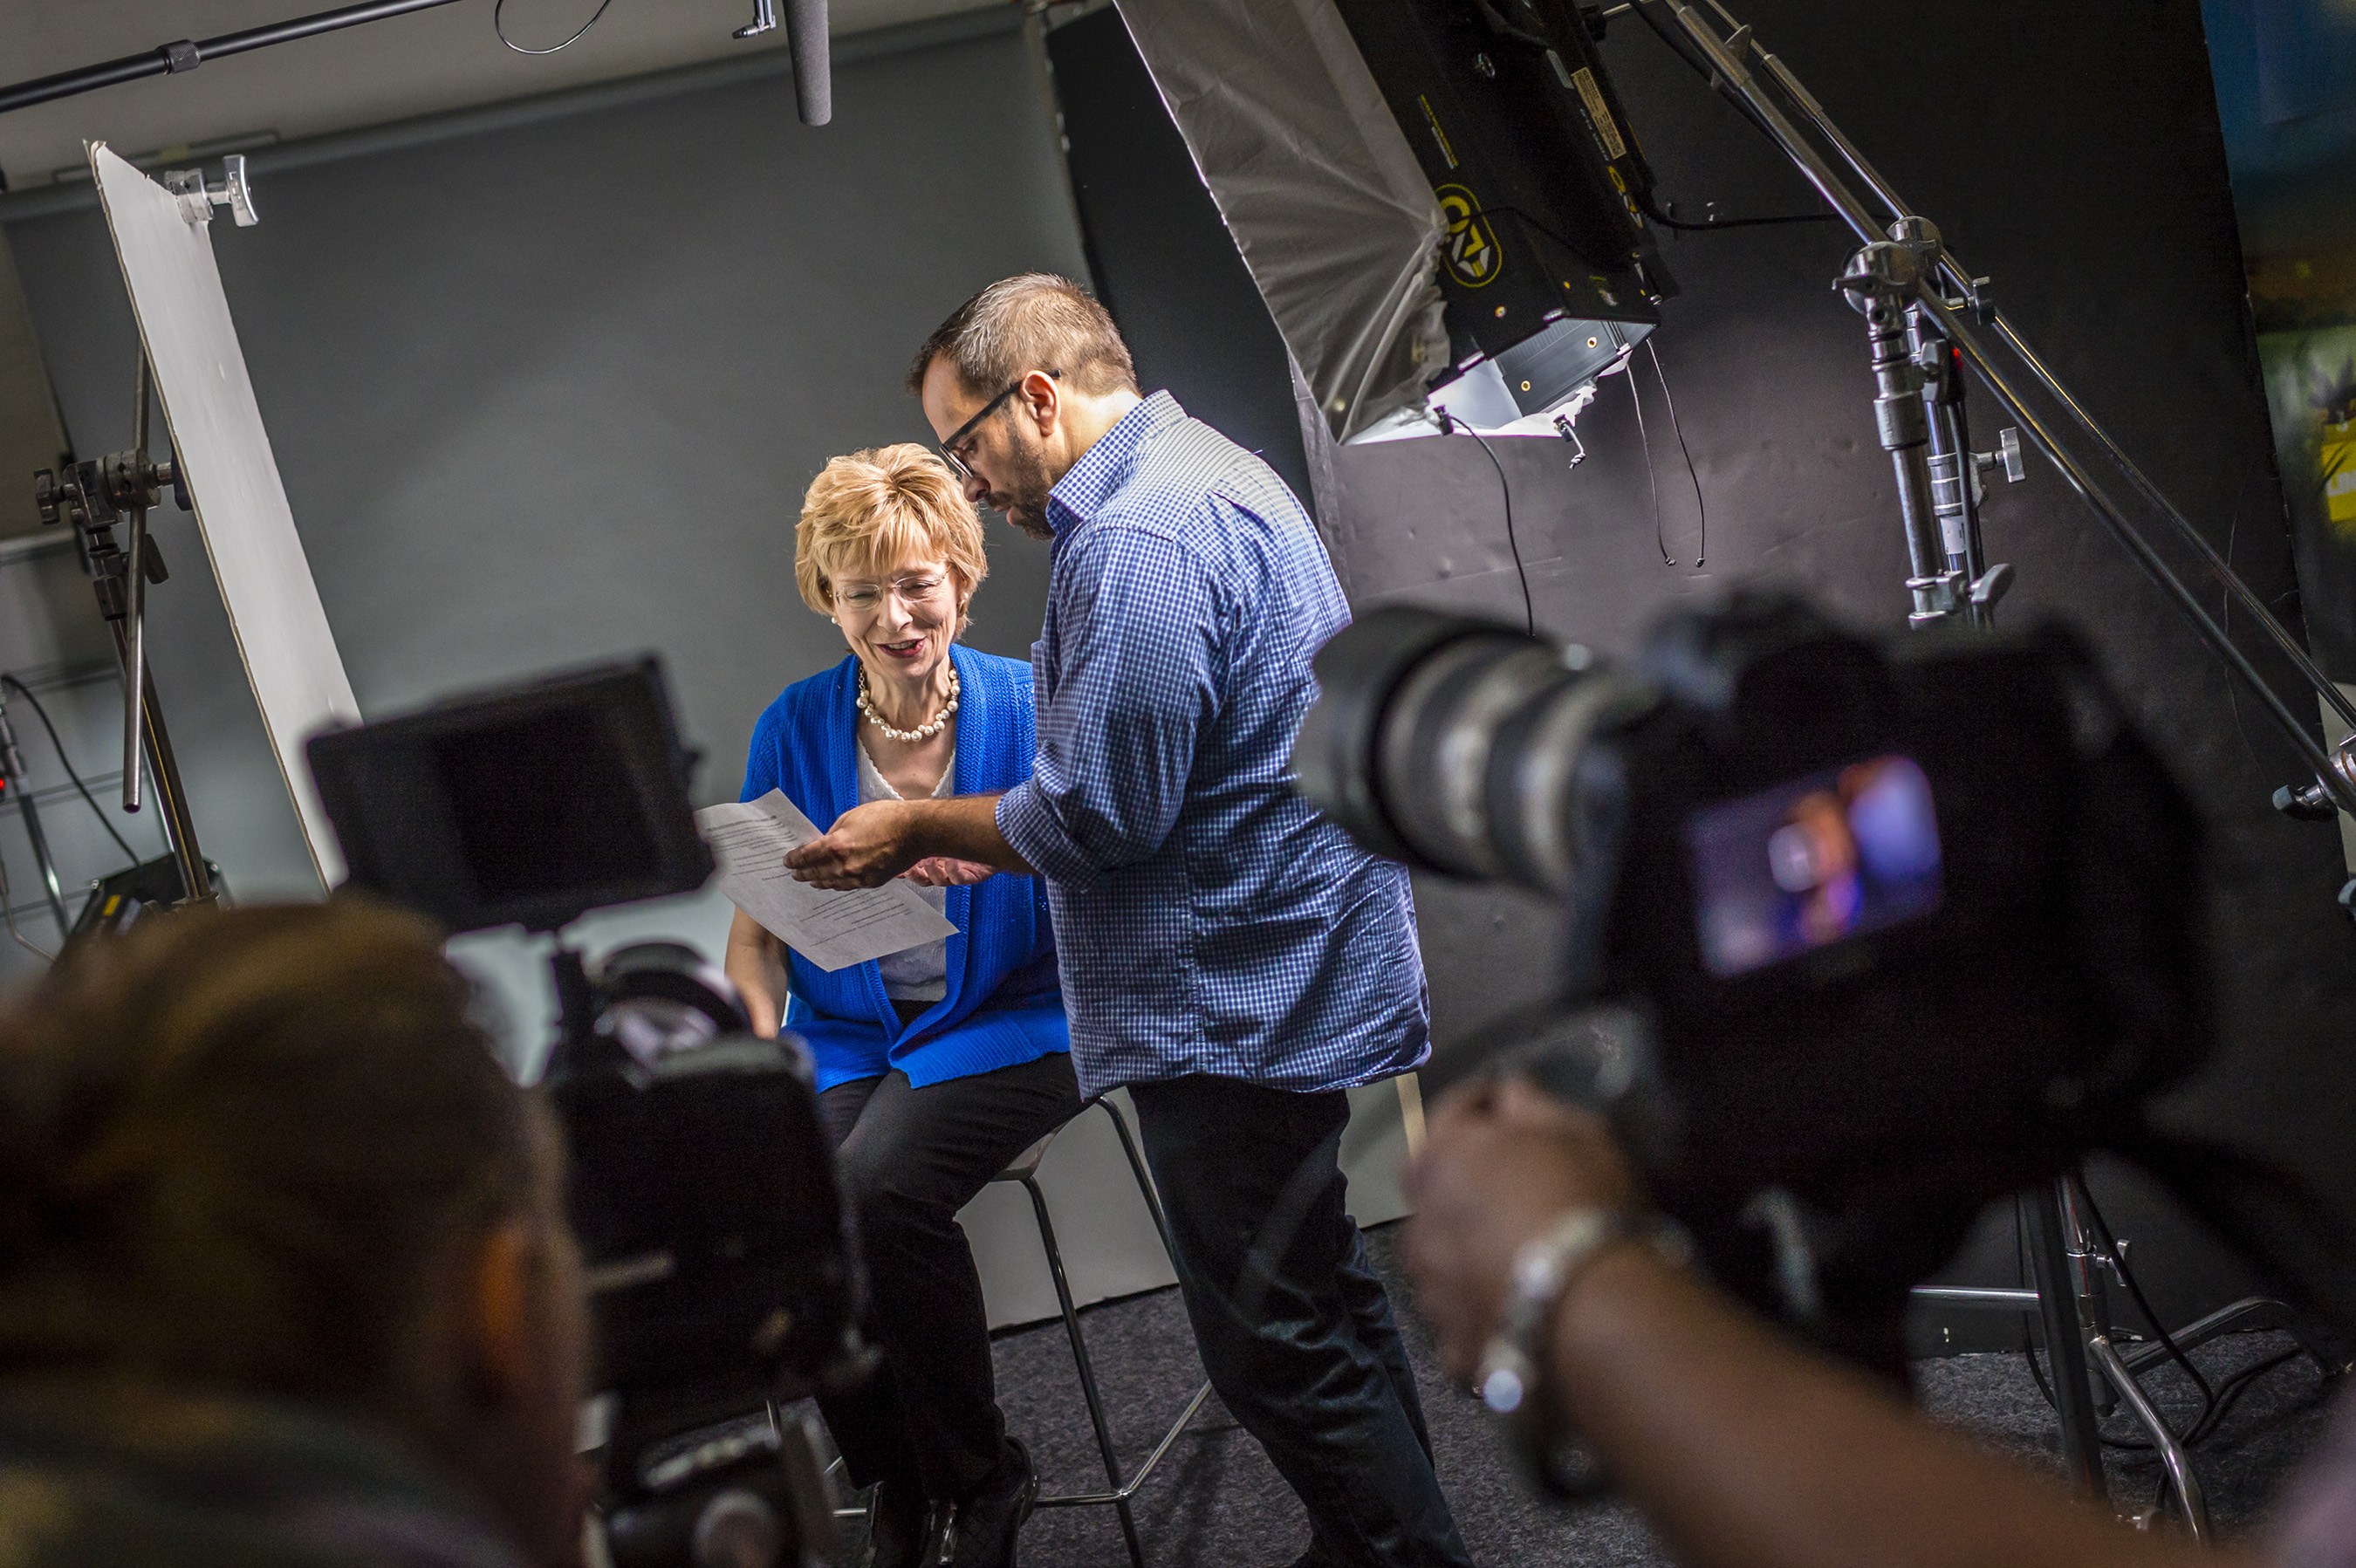 Metastatic Breast Cancer Advocate and Patient, Shirley Mertz shares a joke with AgencyRx's VP, Group Copy Supervisor, Jeffery Forester - Photographer: Angelo Merendino